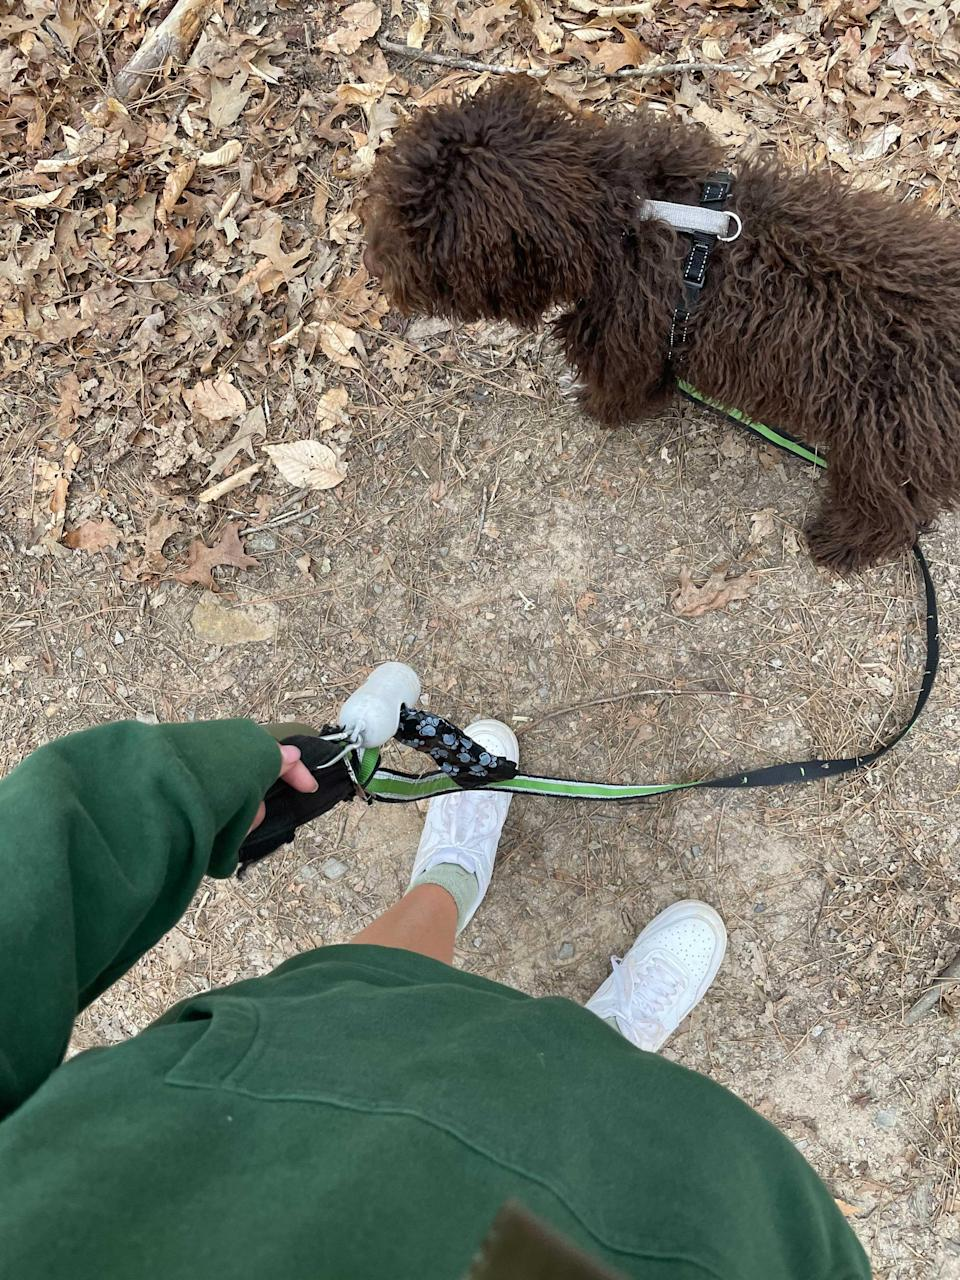 """<h2><h2>Kurgo Quantum 6-in-1 Dog Leash</h2></h2><br>""""I'm in the middle of leash training Lucca which means walks can be very complicated. Sometimes I want him standing close to my right side, and other times he's free to wander ahead of me. Kurgo's Quantum leash lets you utilize six different set ups and it even uses a reliable carabiner. Plus, it comes in a few fun colors"""" — <em>Morgan Baila, Supervising Editor</em><br><br><strong>chewy, kurgo</strong> Quantum 6-in-1 Dog Leash, $, available at <a href=""""https://go.skimresources.com/?id=30283X879131&url=https%3A%2F%2Fwww.kurgo.com%2Fleashes-collars%2Fquantum-6-in-1-dog-leash%2F"""" rel=""""nofollow noopener"""" target=""""_blank"""" data-ylk=""""slk:Chewy, kurgo"""" class=""""link rapid-noclick-resp"""">Chewy, kurgo</a>"""